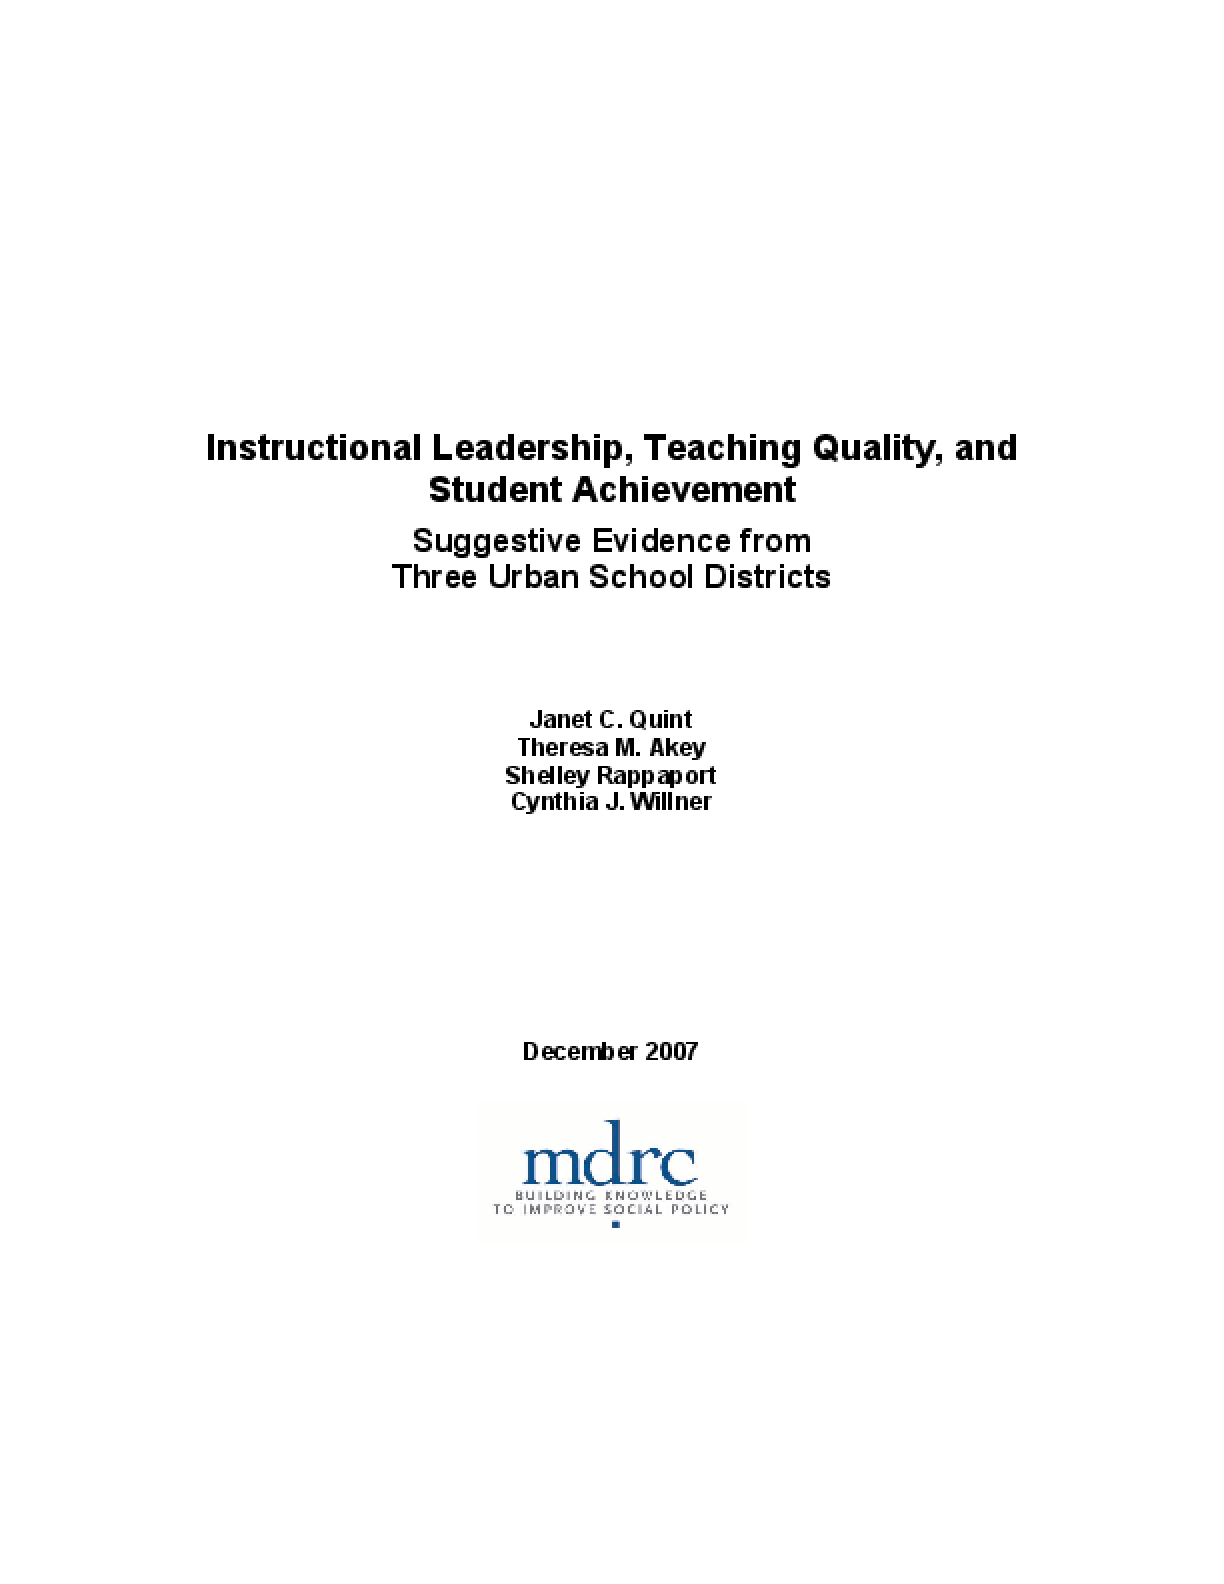 Instructional Leadership, Teaching Quality, and Student Achievement: Suggestive Evidence from Three Urban School Districts